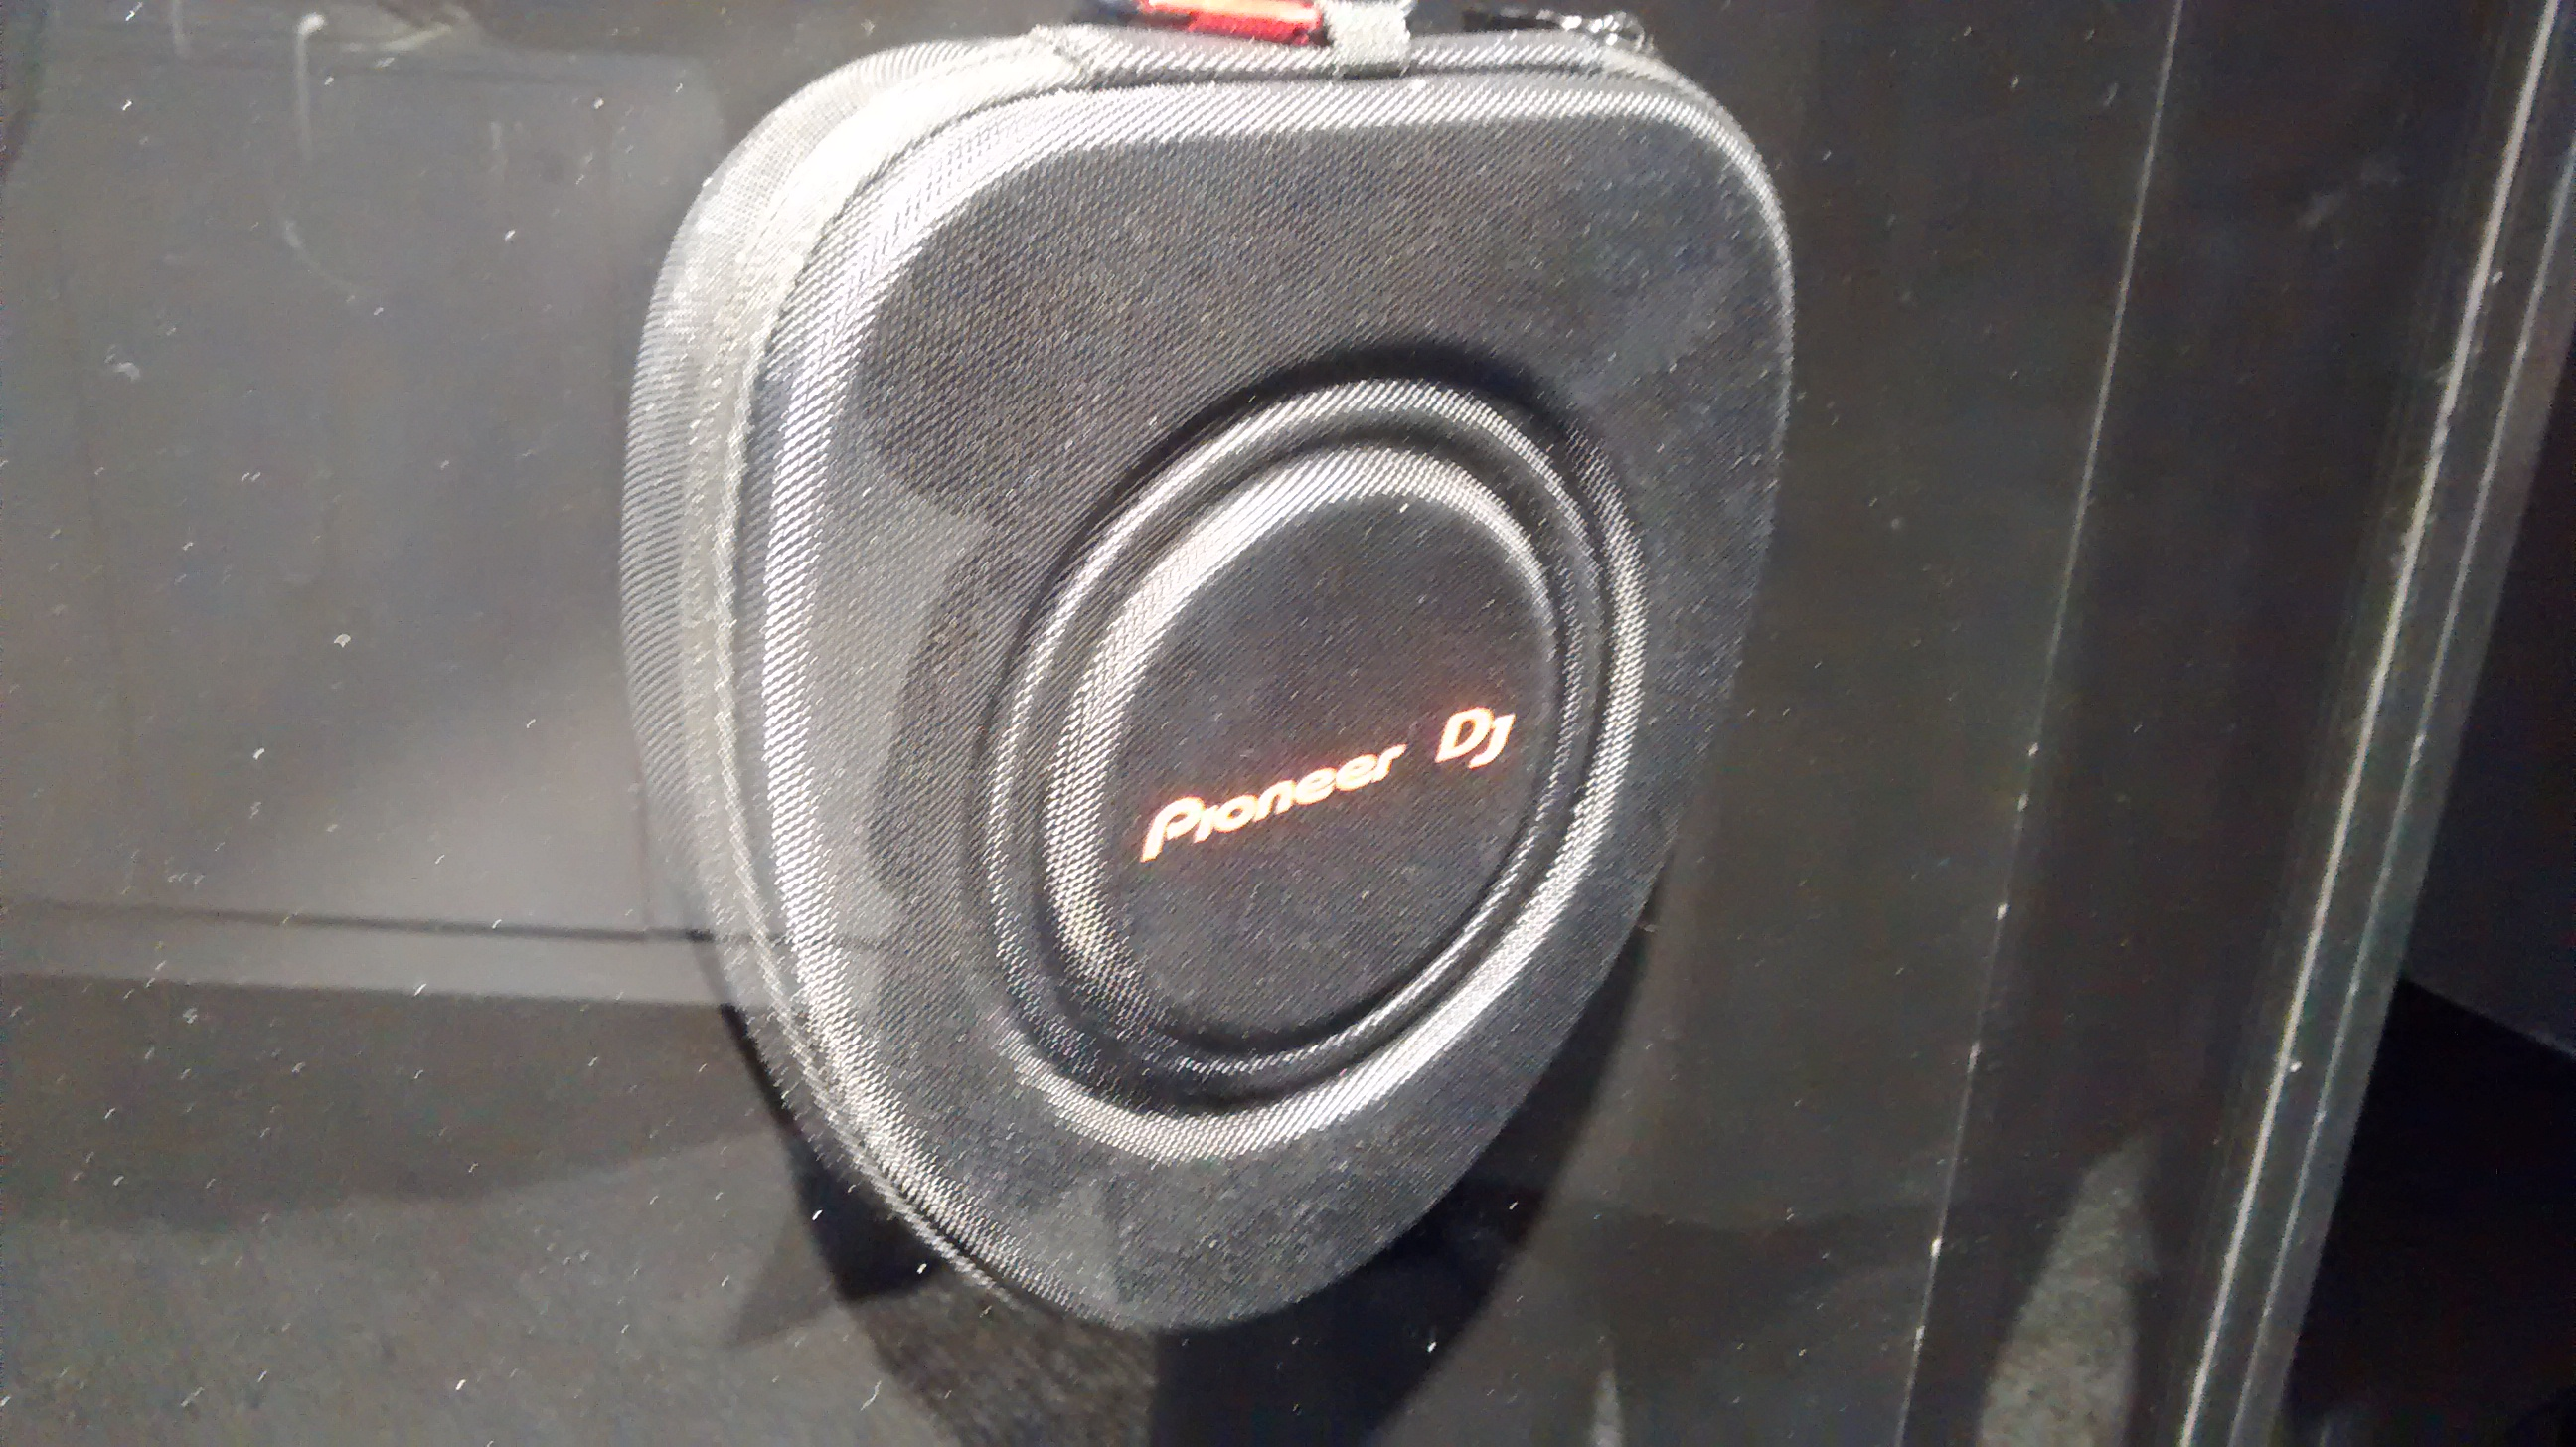 Pioneer headphone case